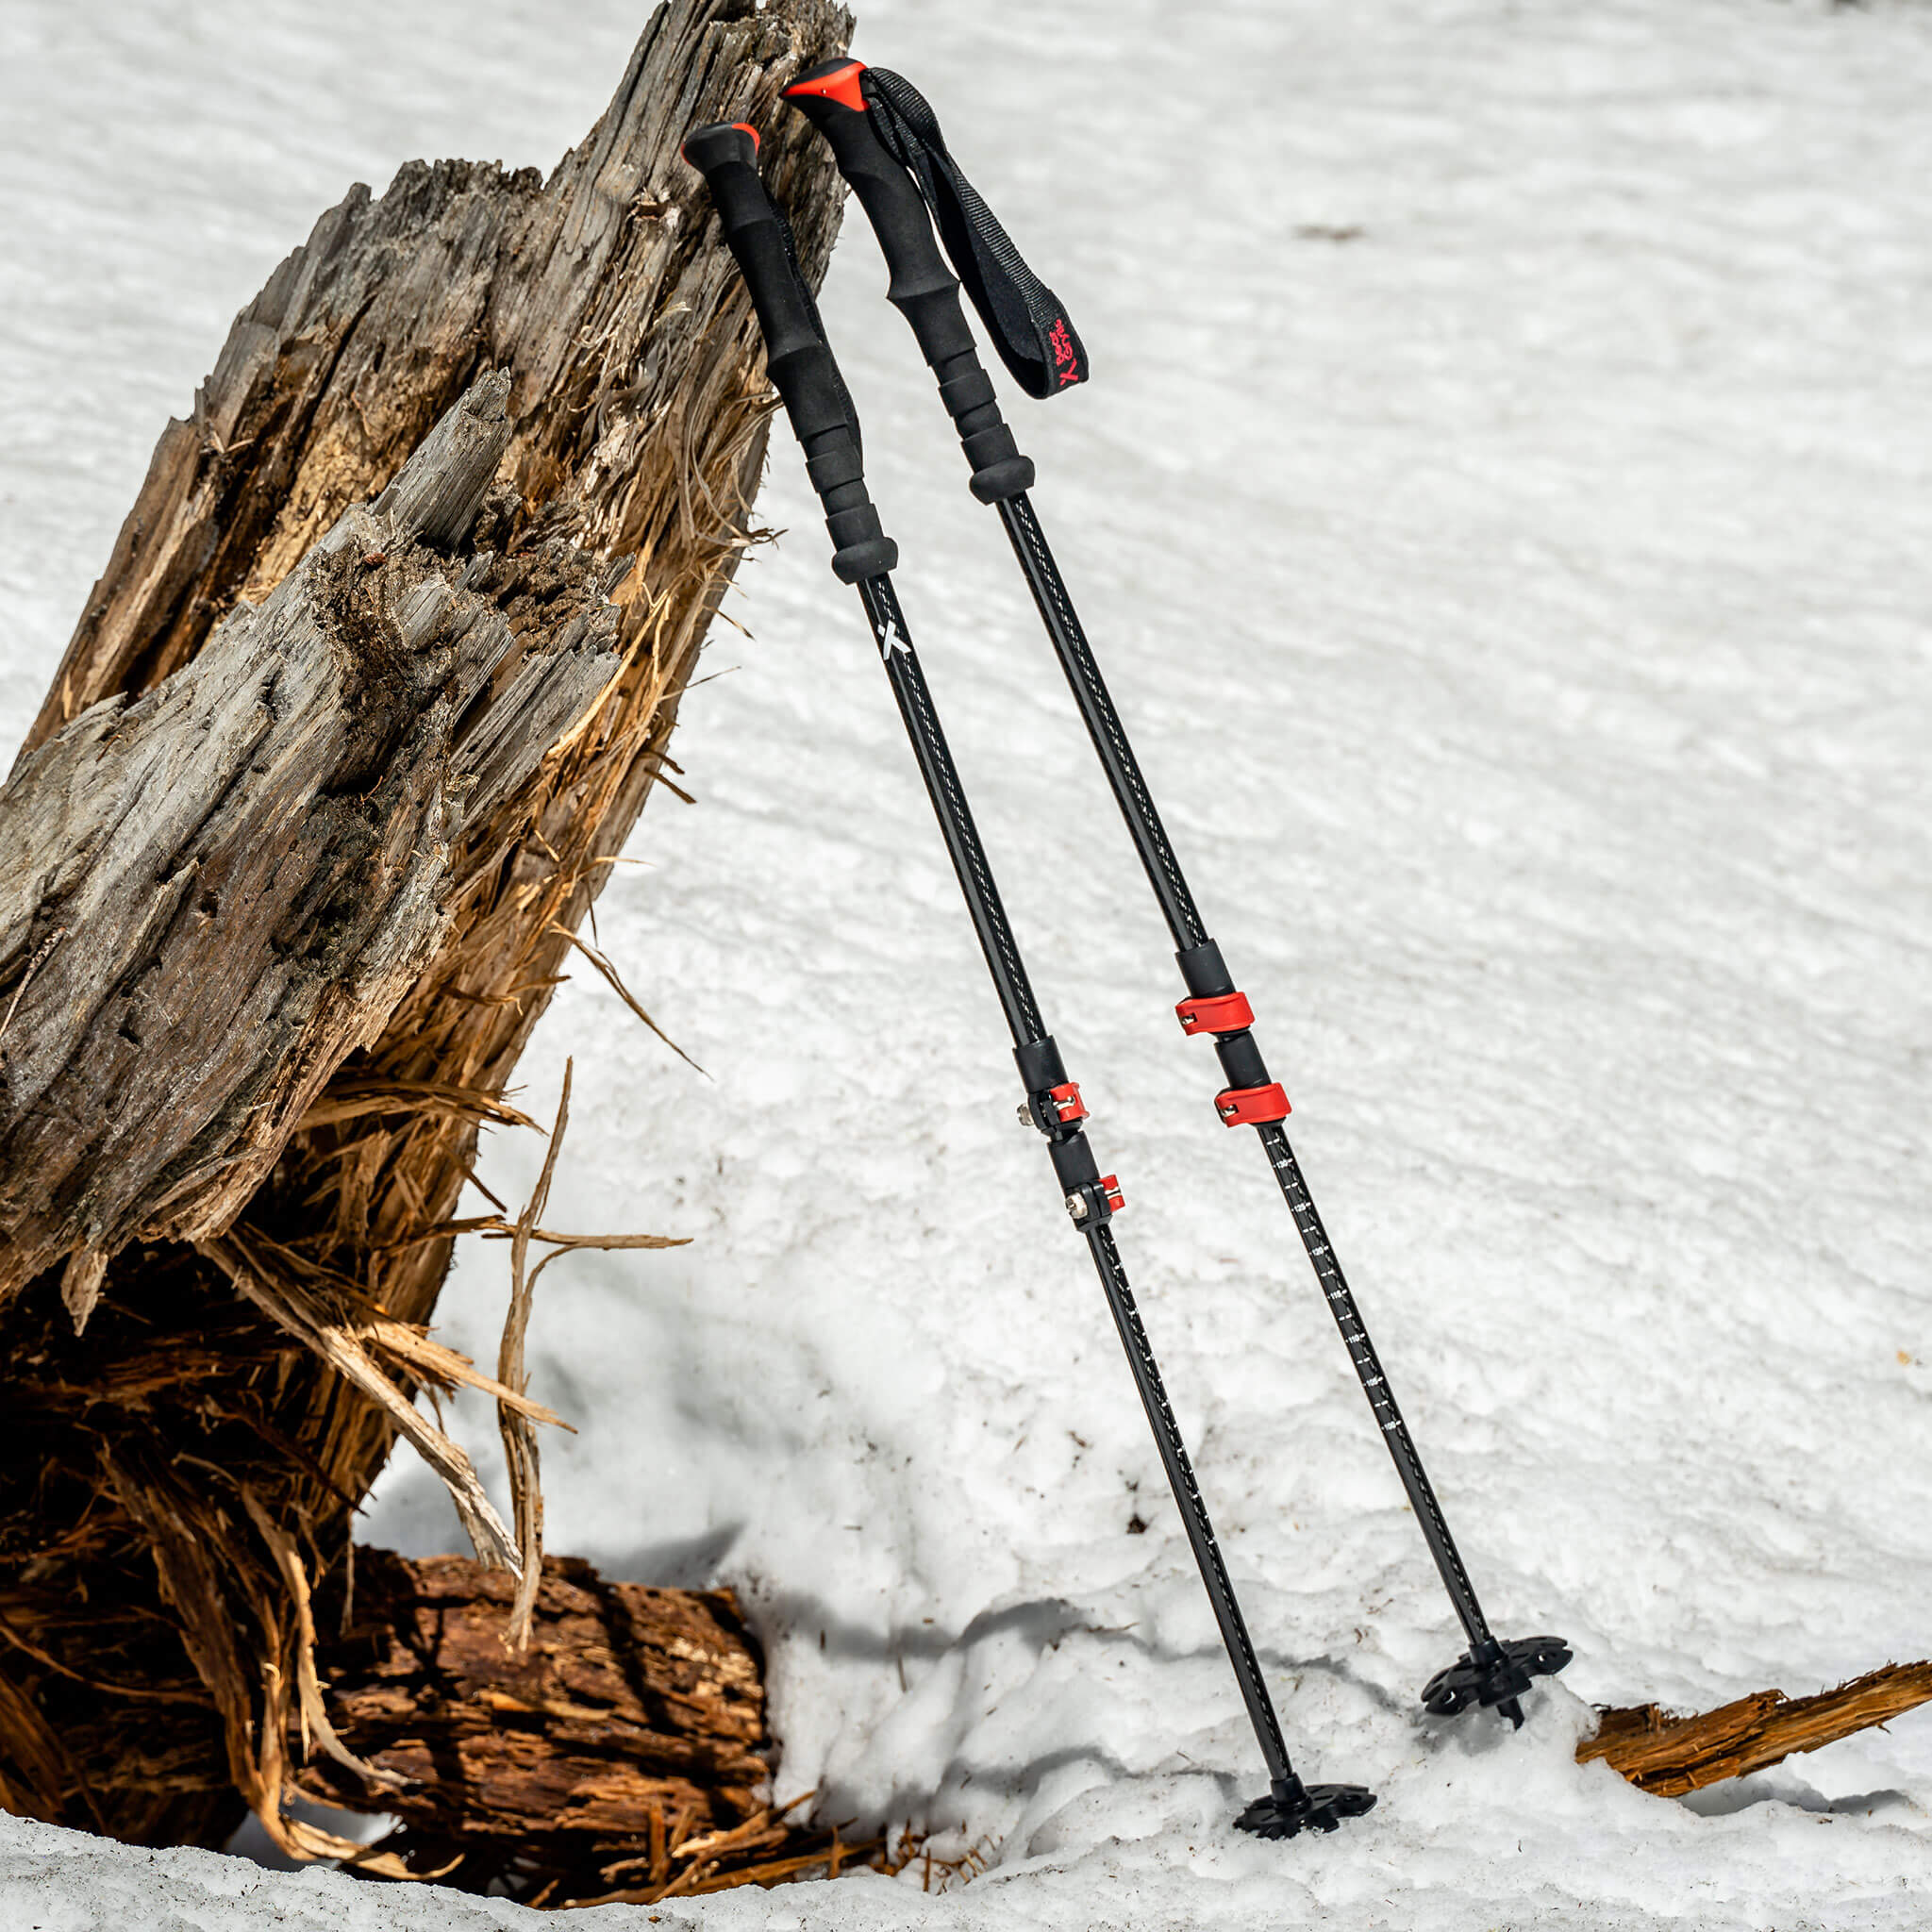 Bear Grylls Carbon Trekking poles in snow